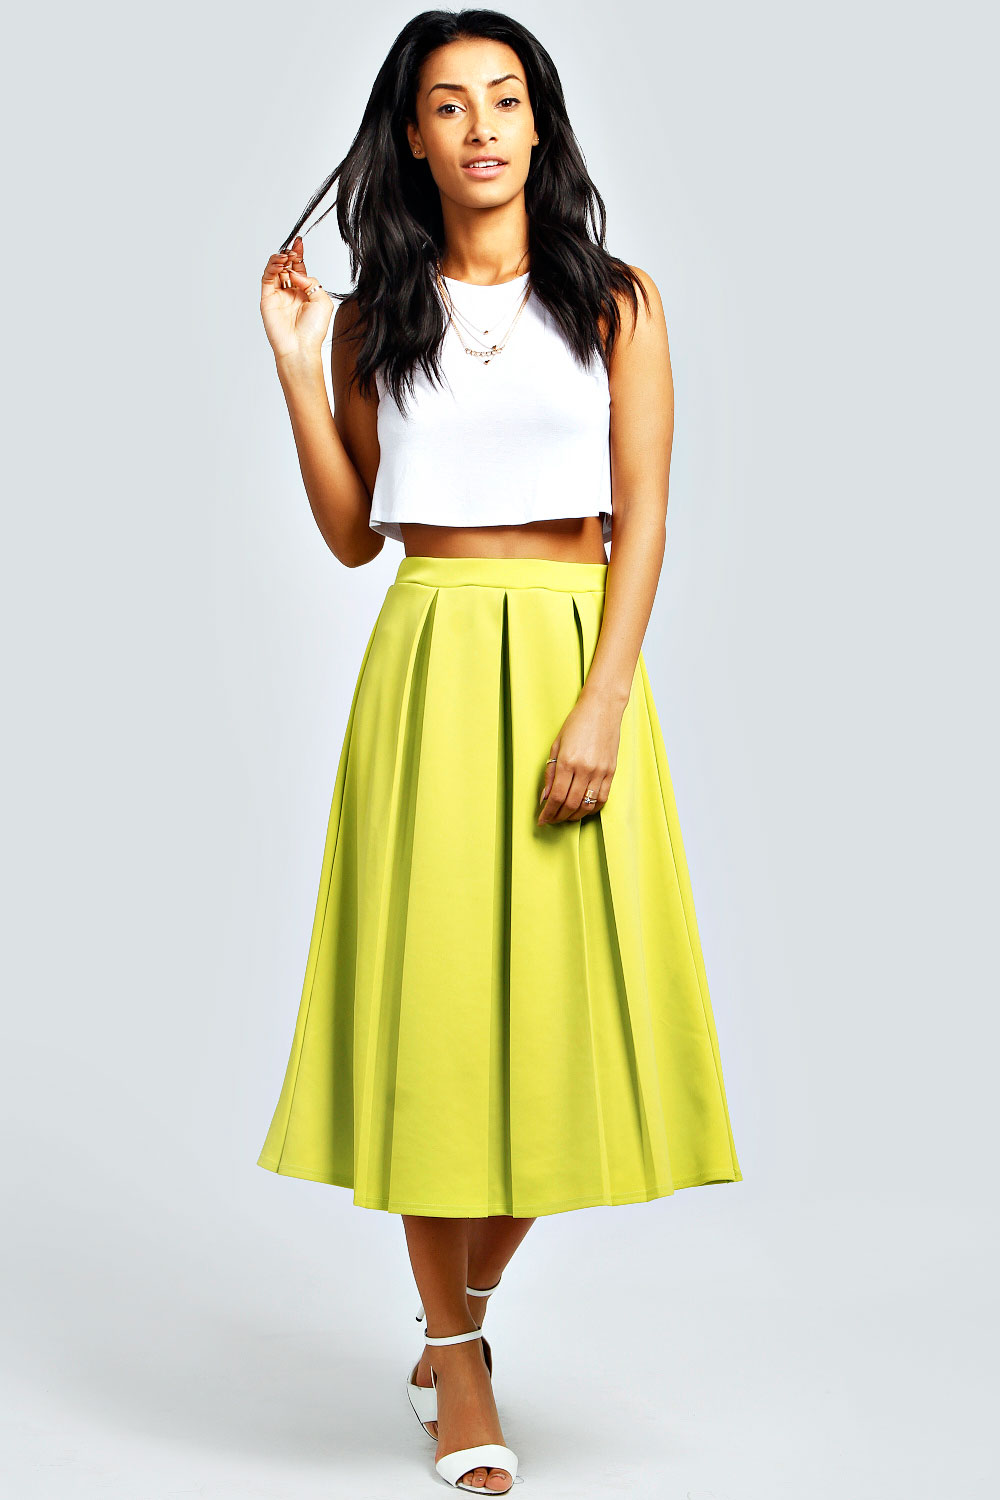 Add elegance and femininity to your wardrobe with a midi skirt from our selection. Printed styles make a bold statement, standing out against plain white T-shirts and muted jumpers.